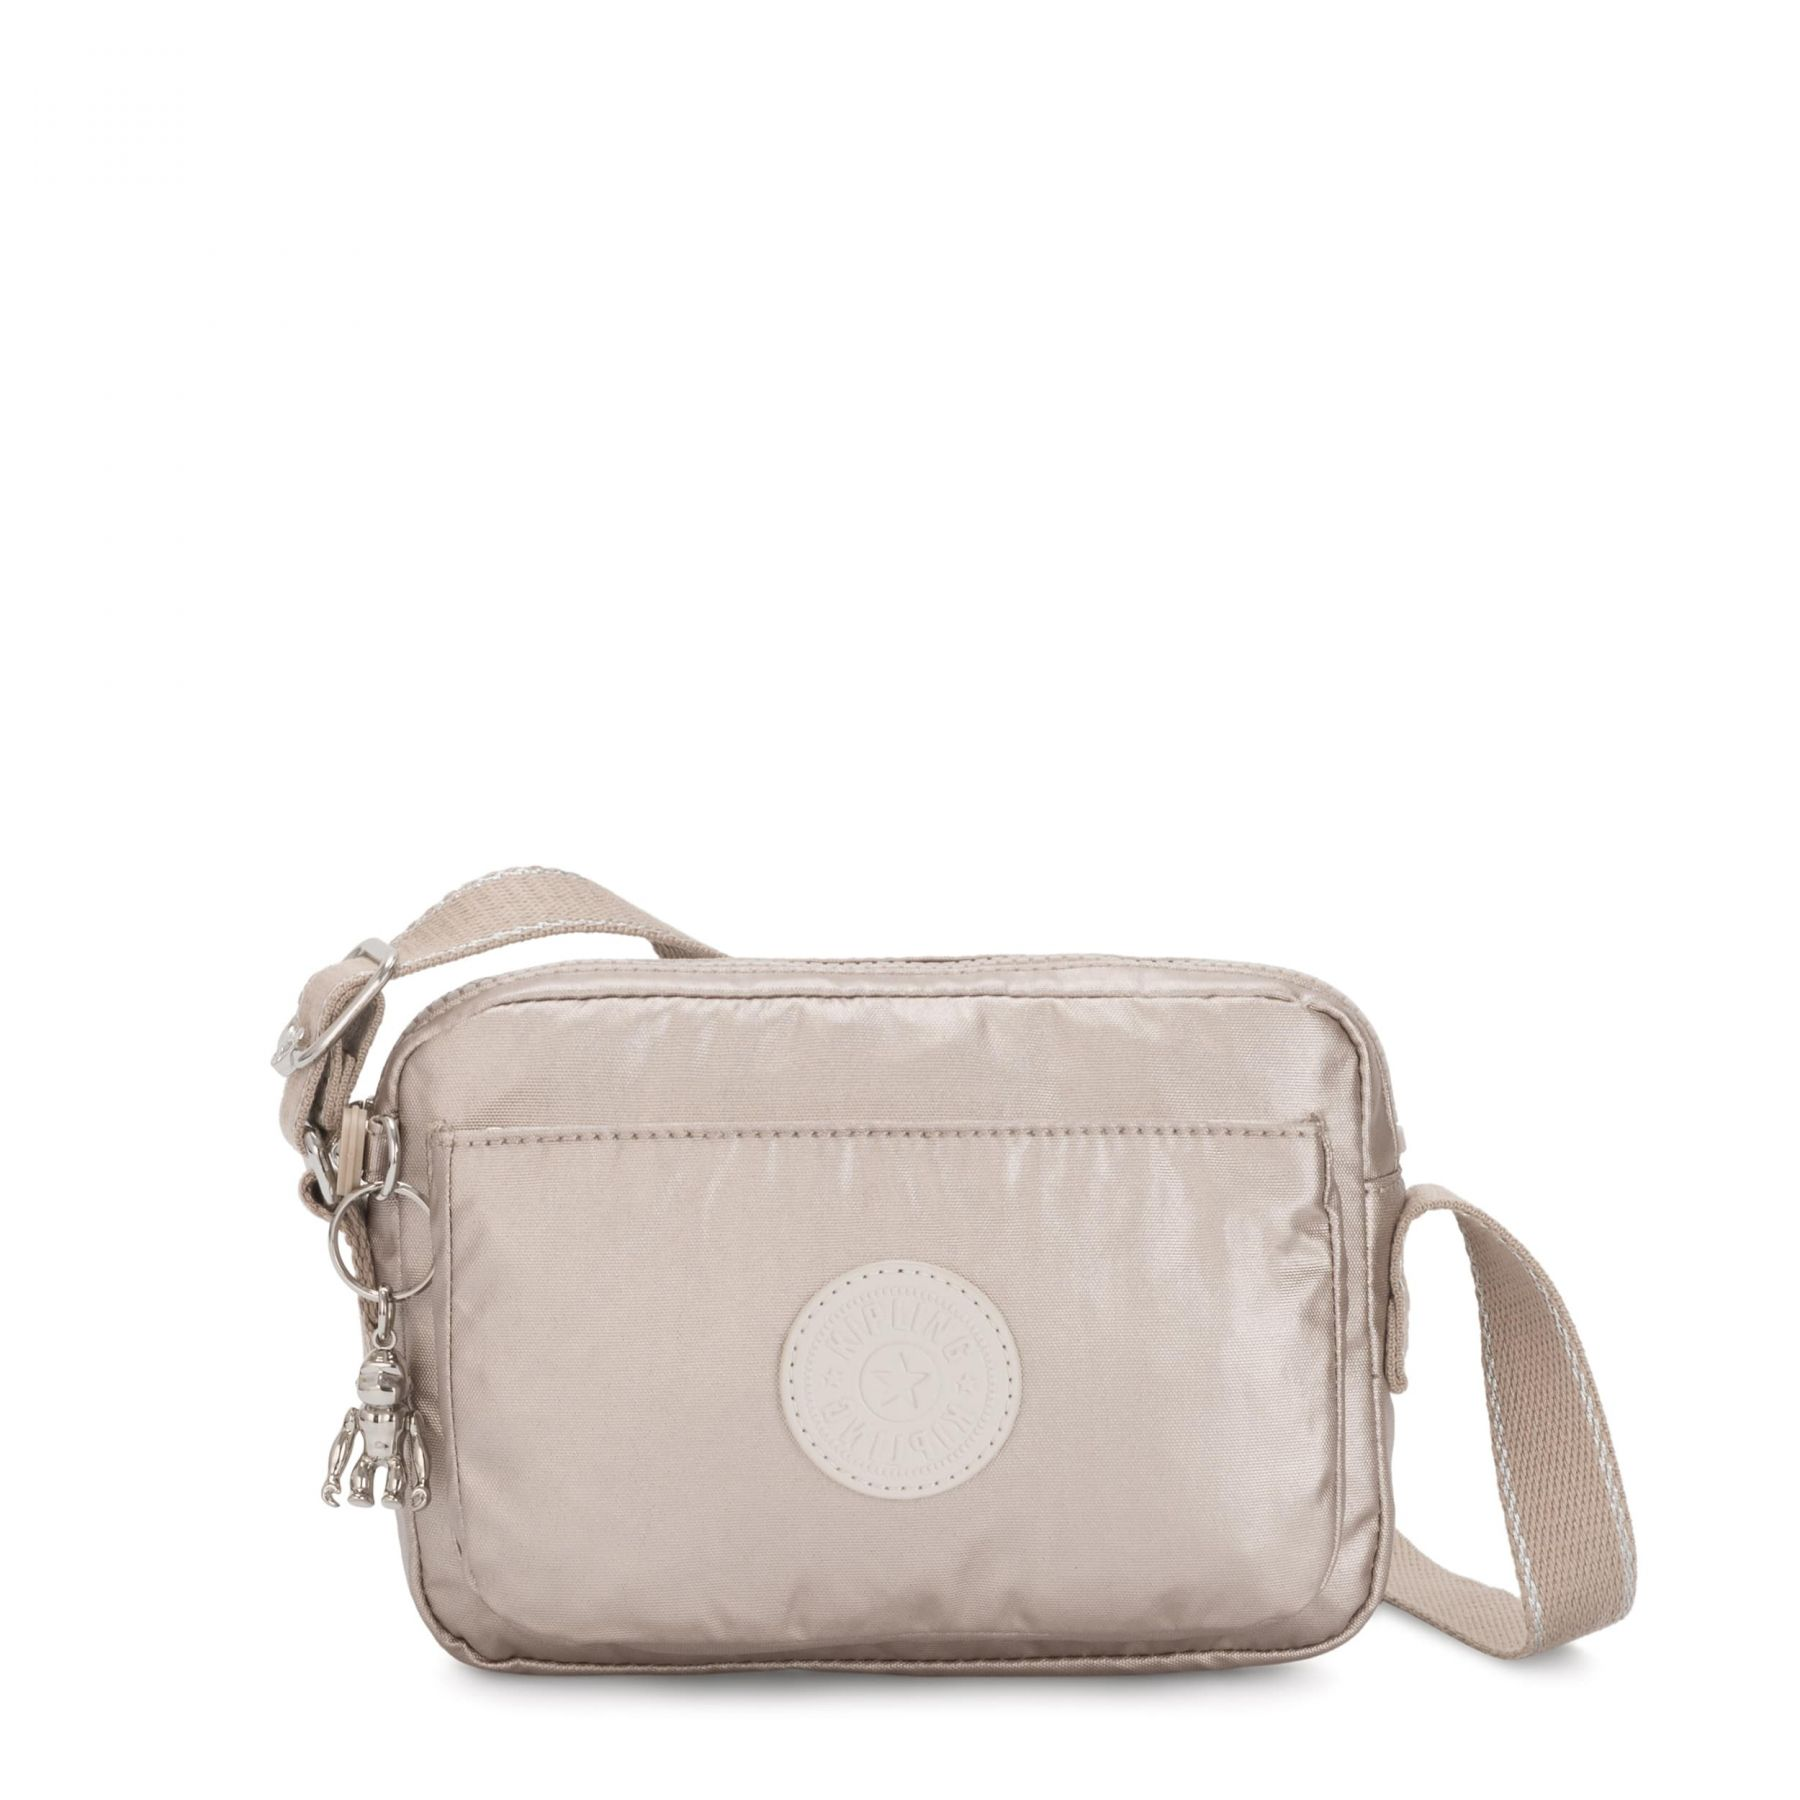 ABANU Latest Shoulder Bags by Kipling - Front view